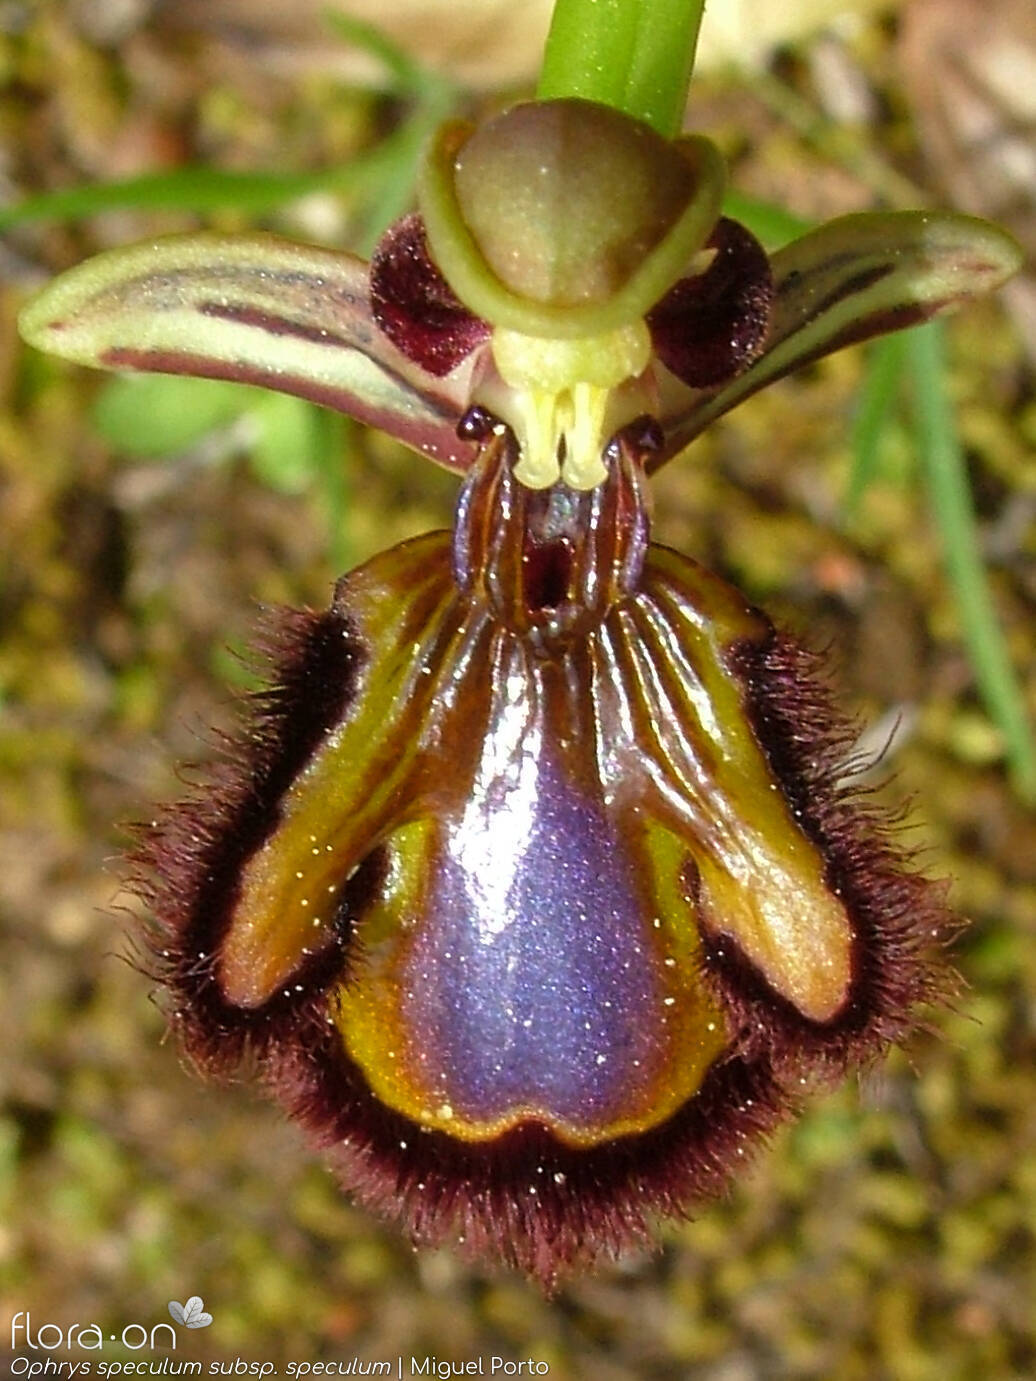 Ophrys speculum speculum - Flor (close-up) | Miguel Porto; CC BY-NC 4.0